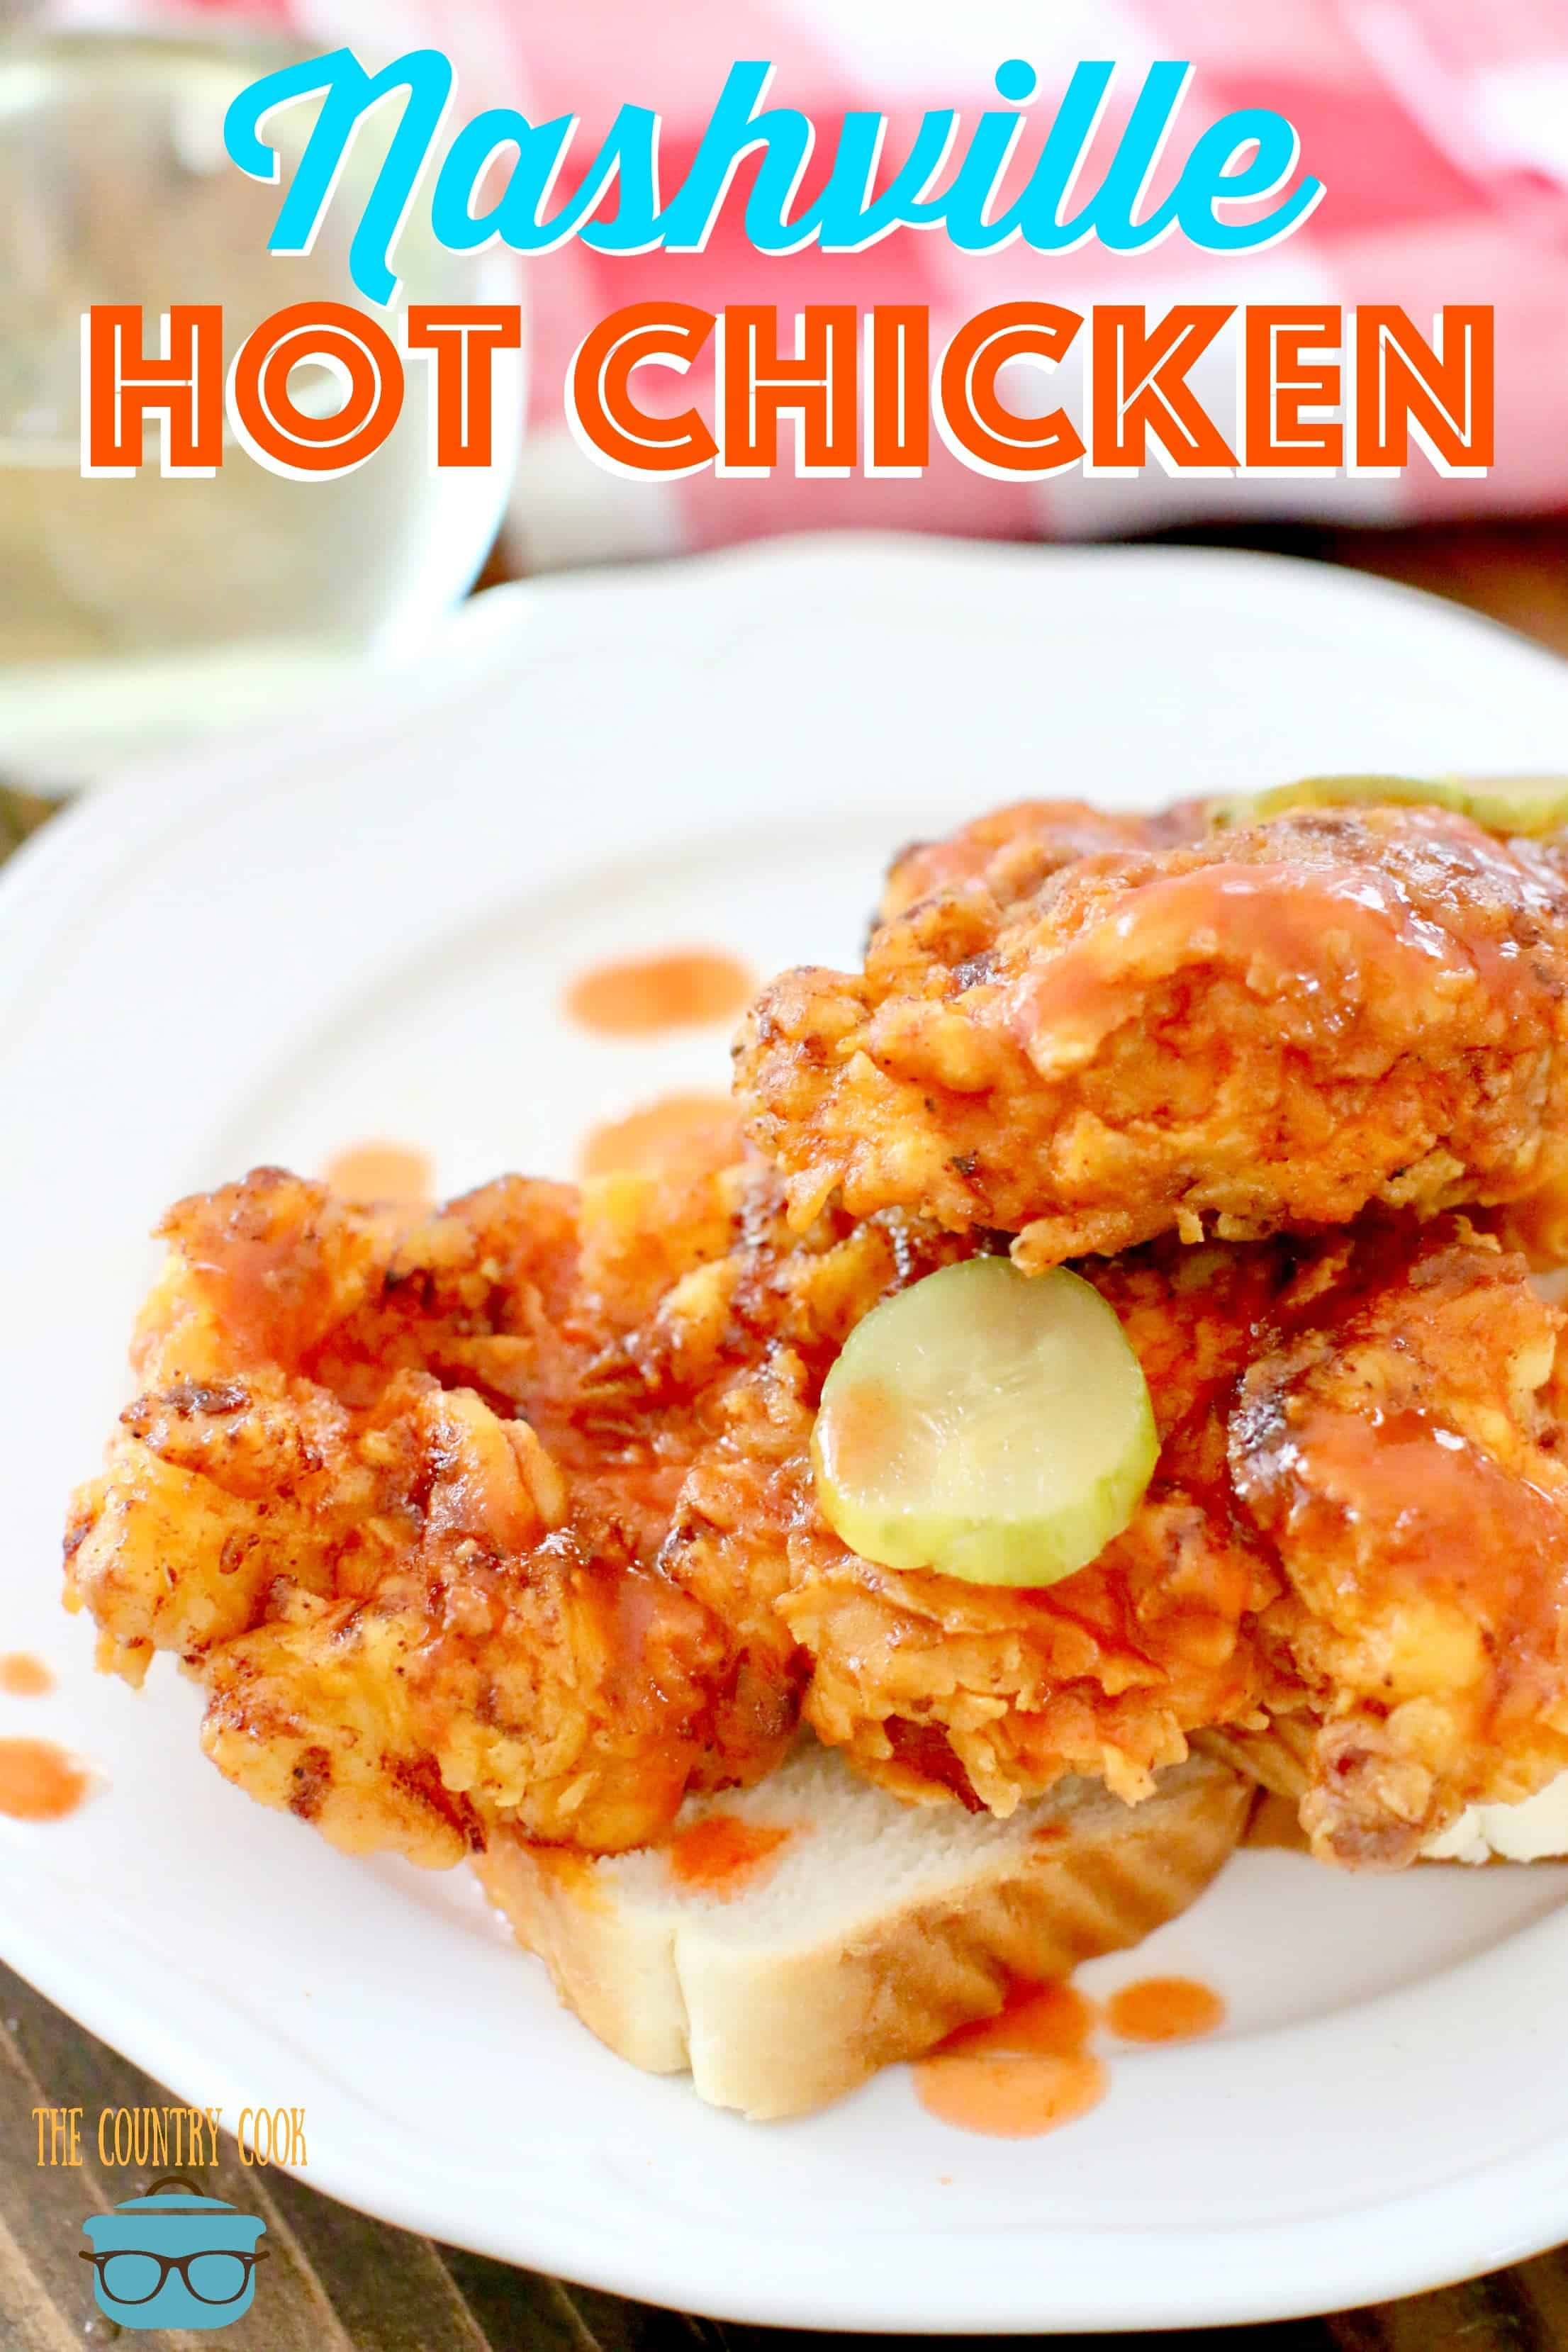 Mild Nashville Hot Chicken recipe from The Country Cook.